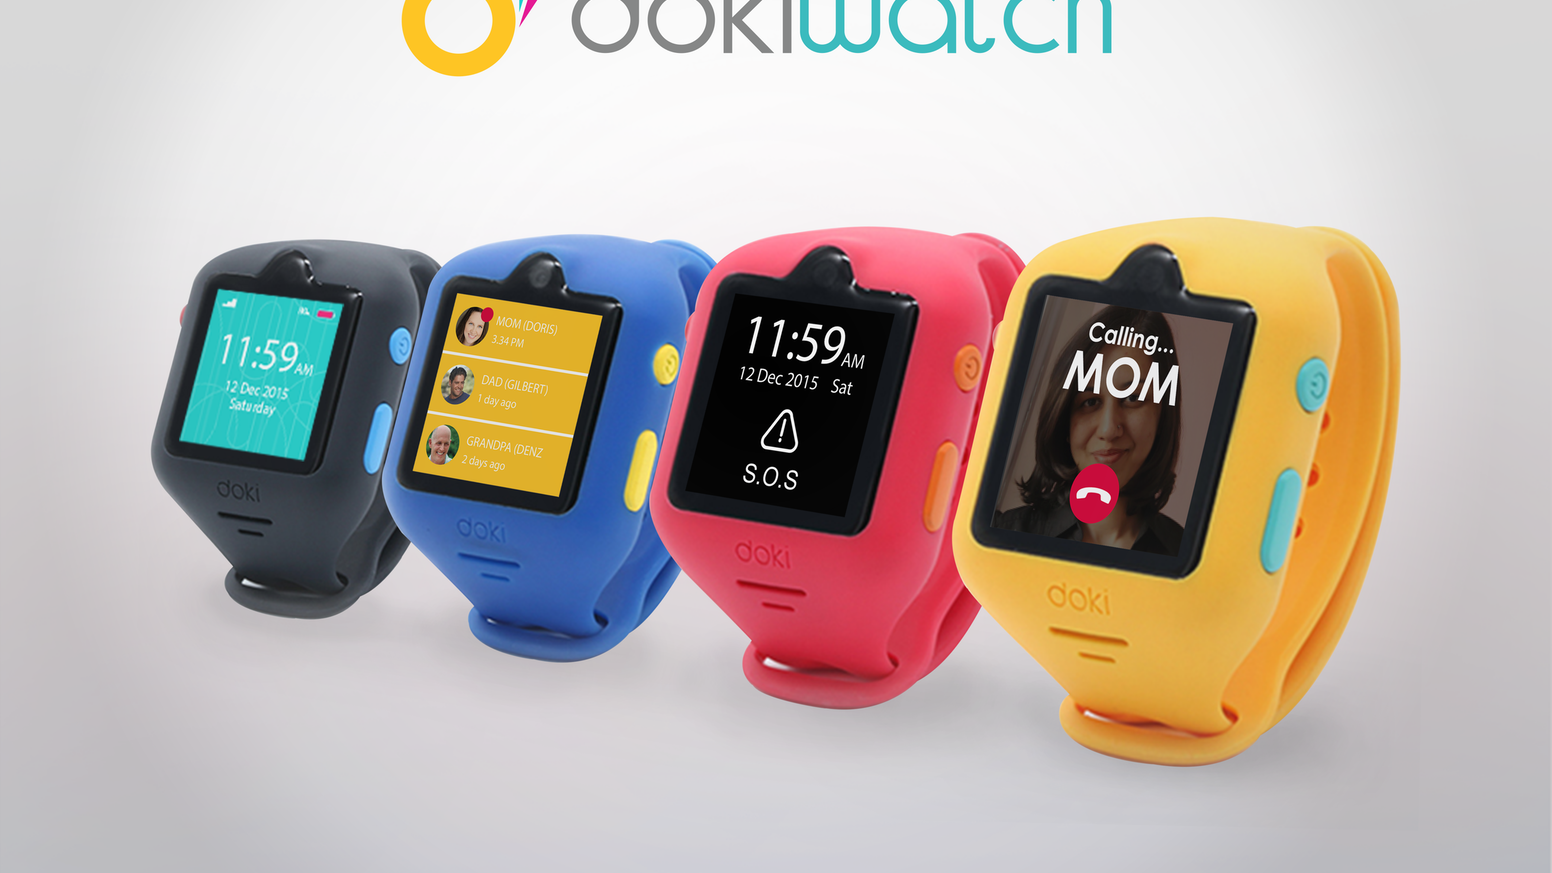 dokiWatch: The first-ever smartwatch for kids to feature video calling. It's an all-in-one wearable phone, GPS locator, fitness tracker, and more!